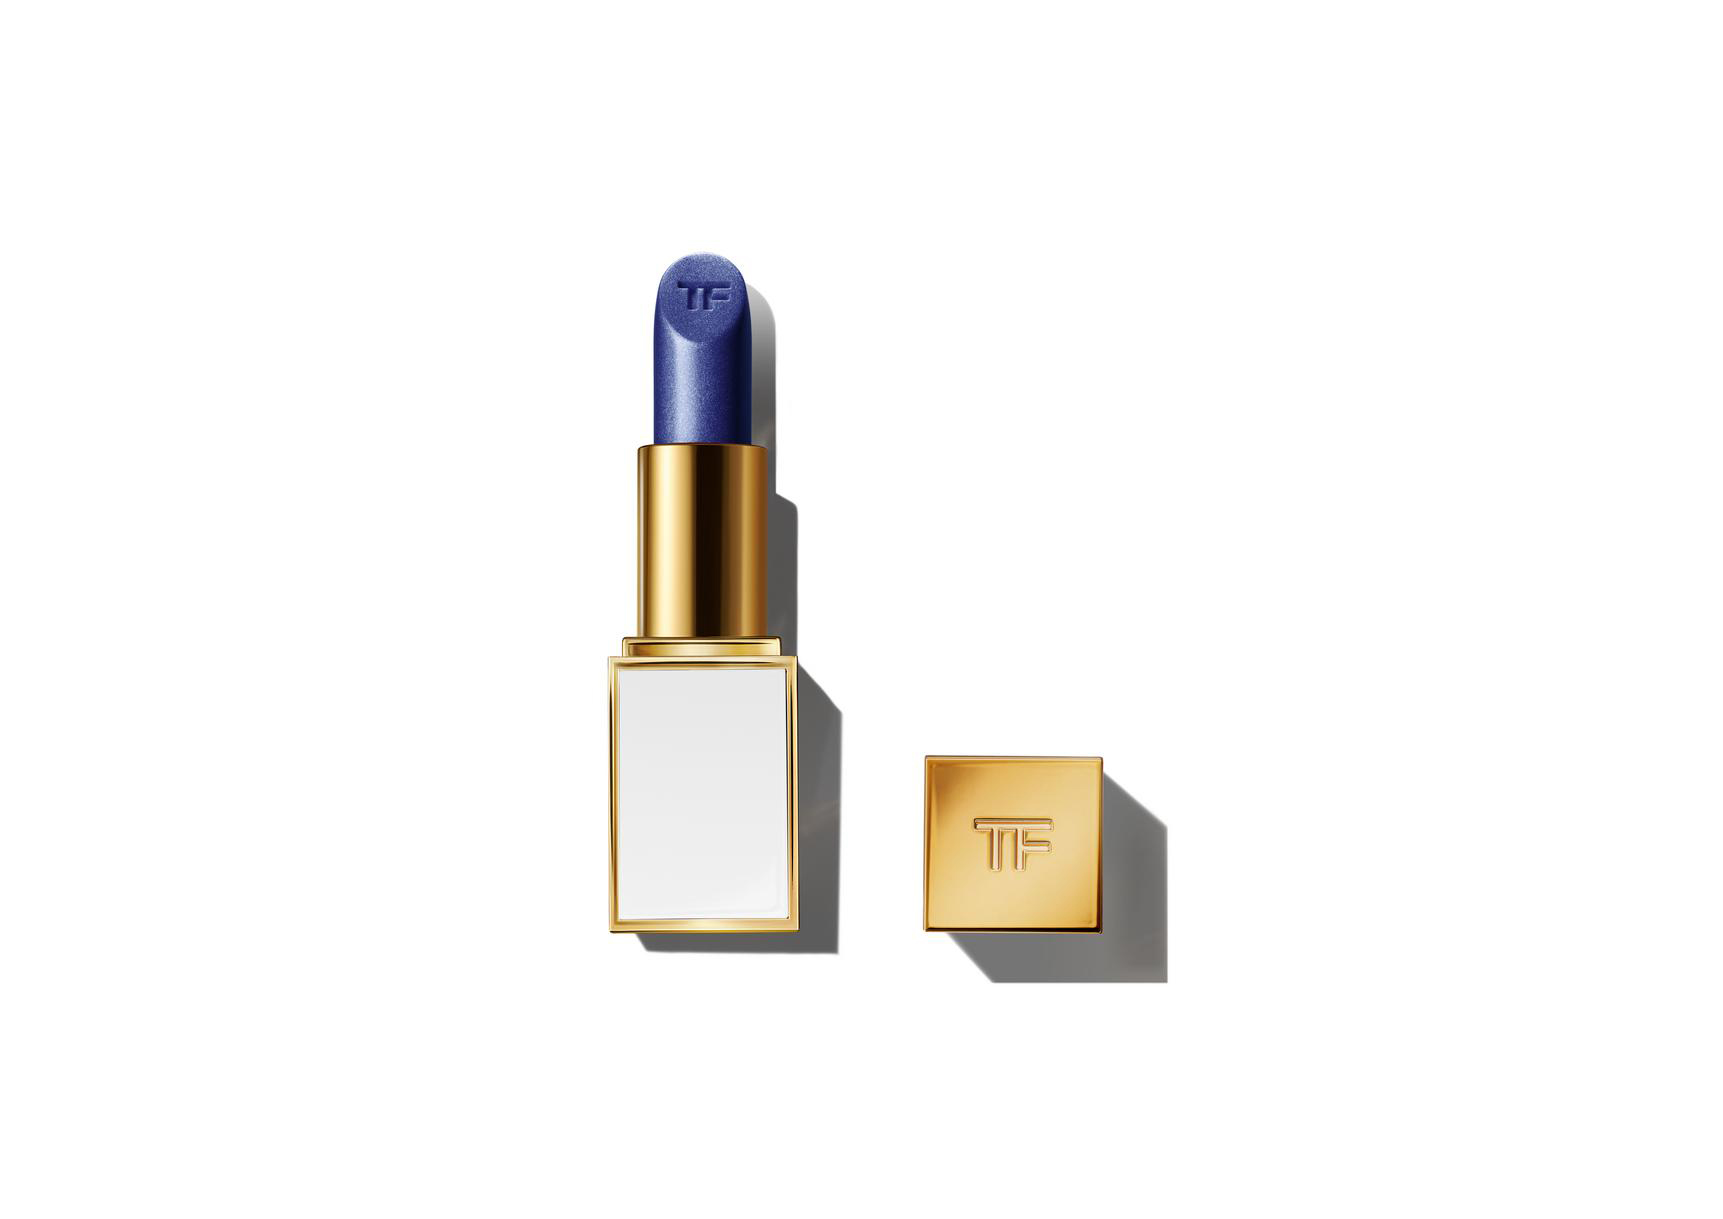 Spell-ometer November 2018 - Tom Ford Cardi B Lipstick